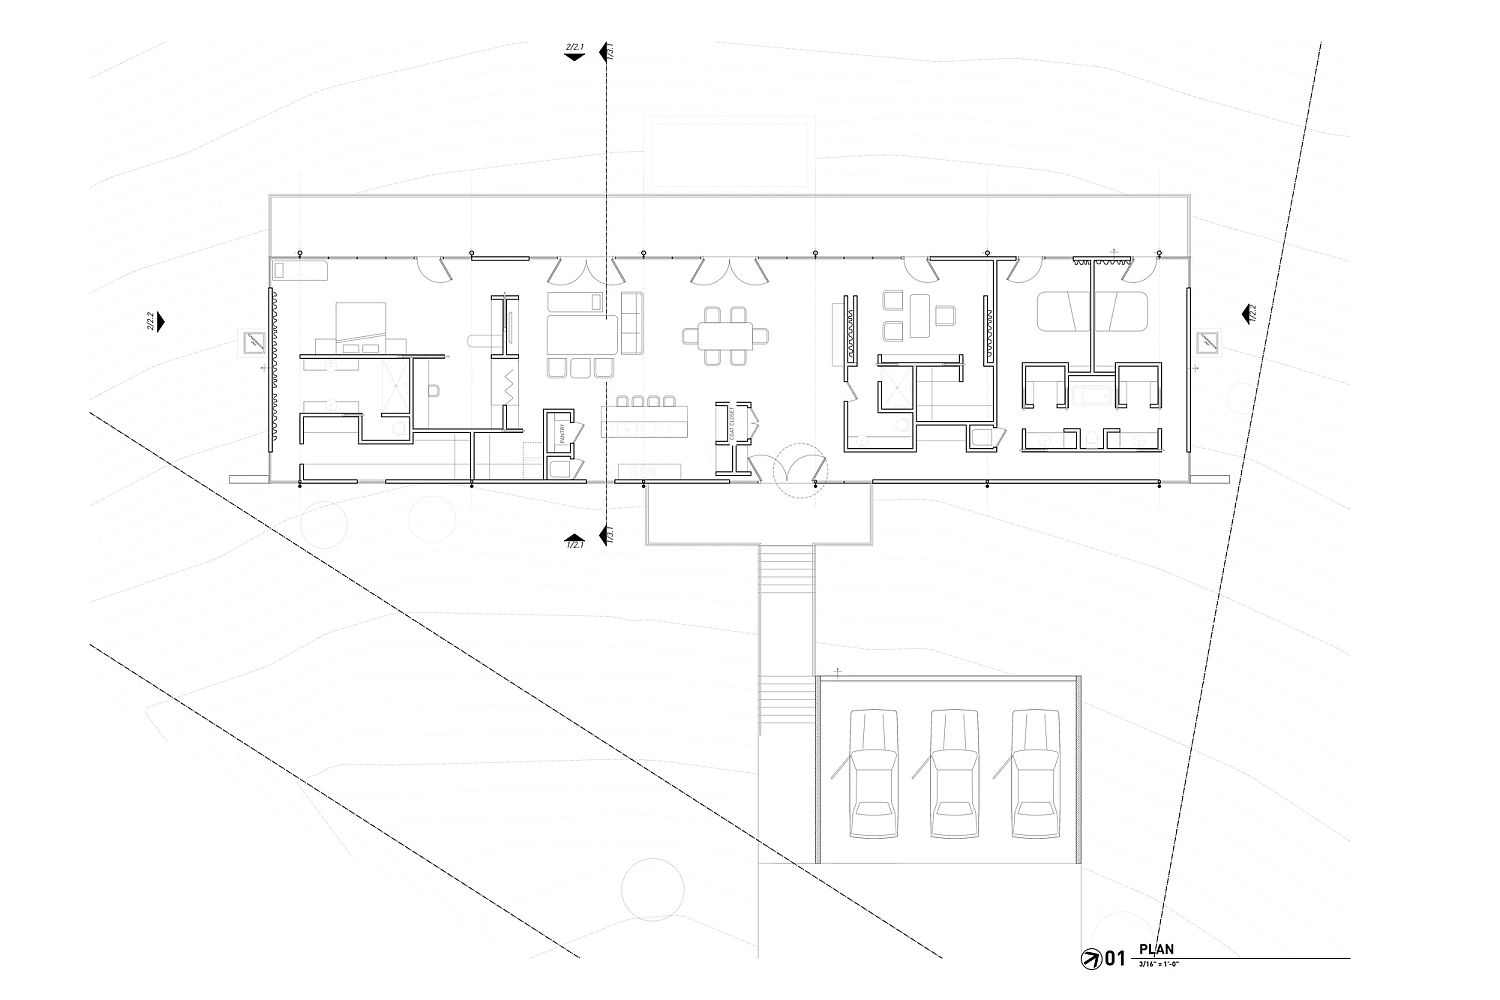 Floor plan of the RoadRunner Residence